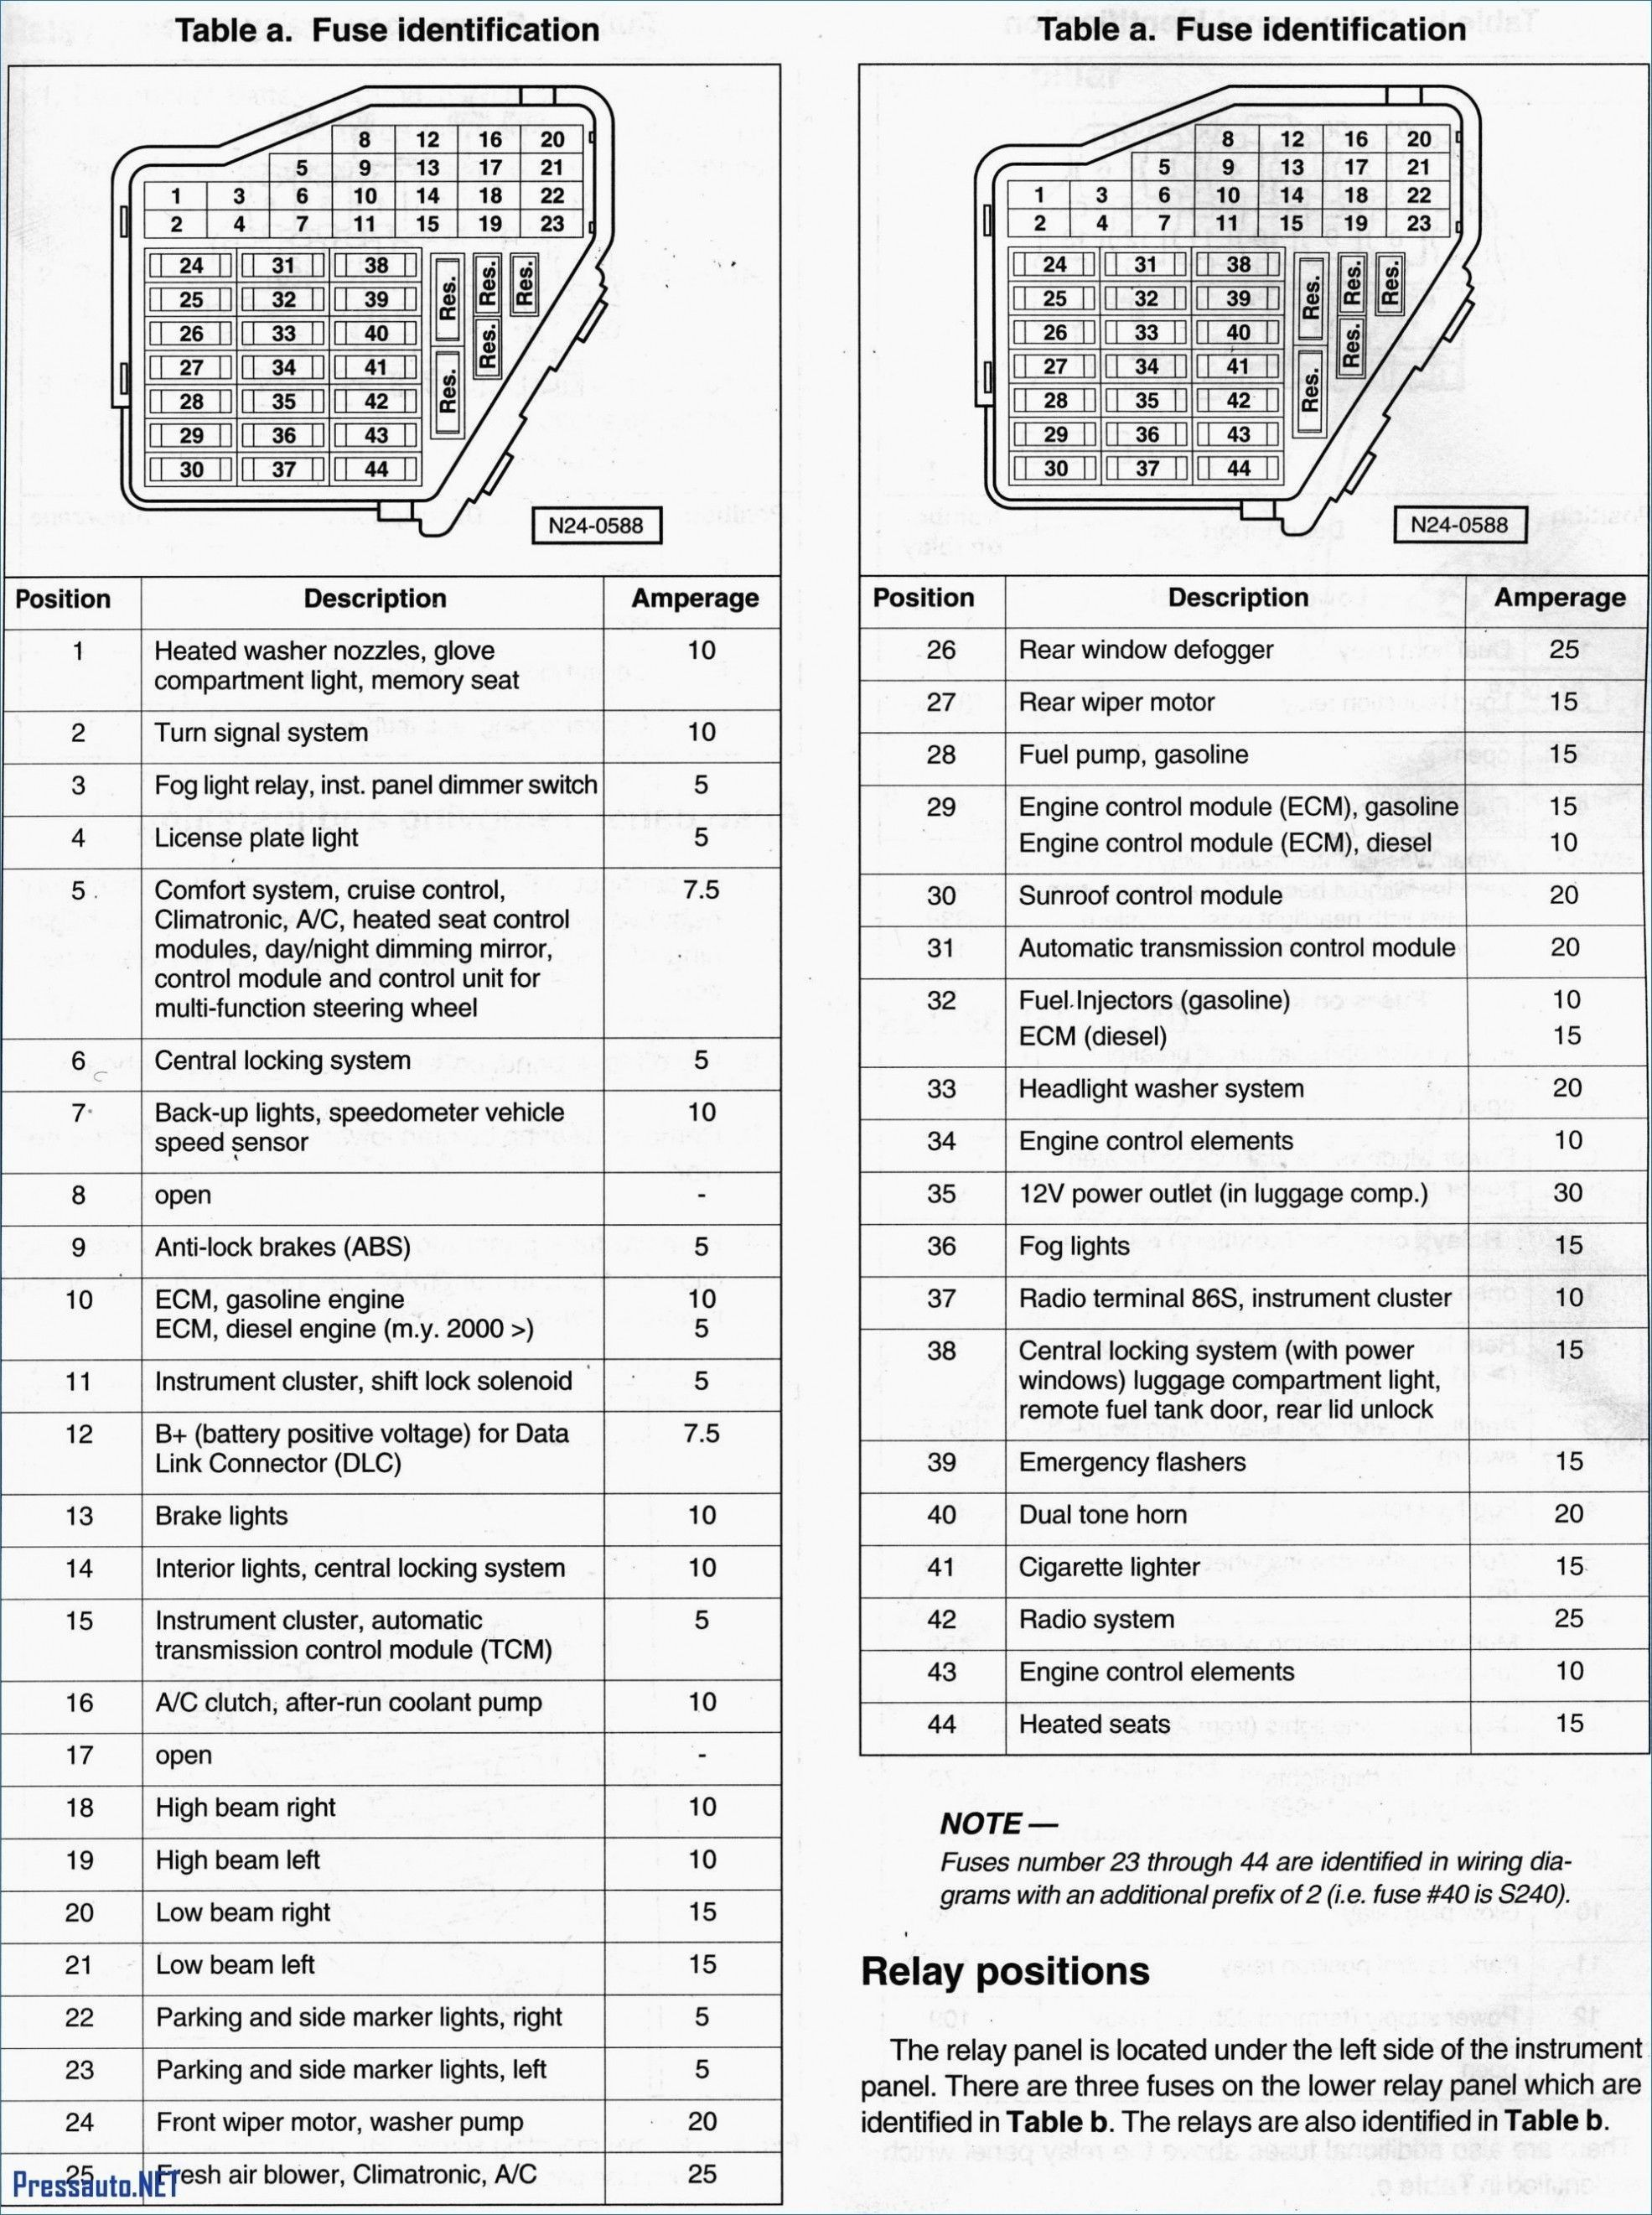 New 1998 Audi A4 Radio Wiring Diagram | Car fuses, Vw mk4, Fuse box | Audi A4 Wiring Diagram 1998 |  | Pinterest